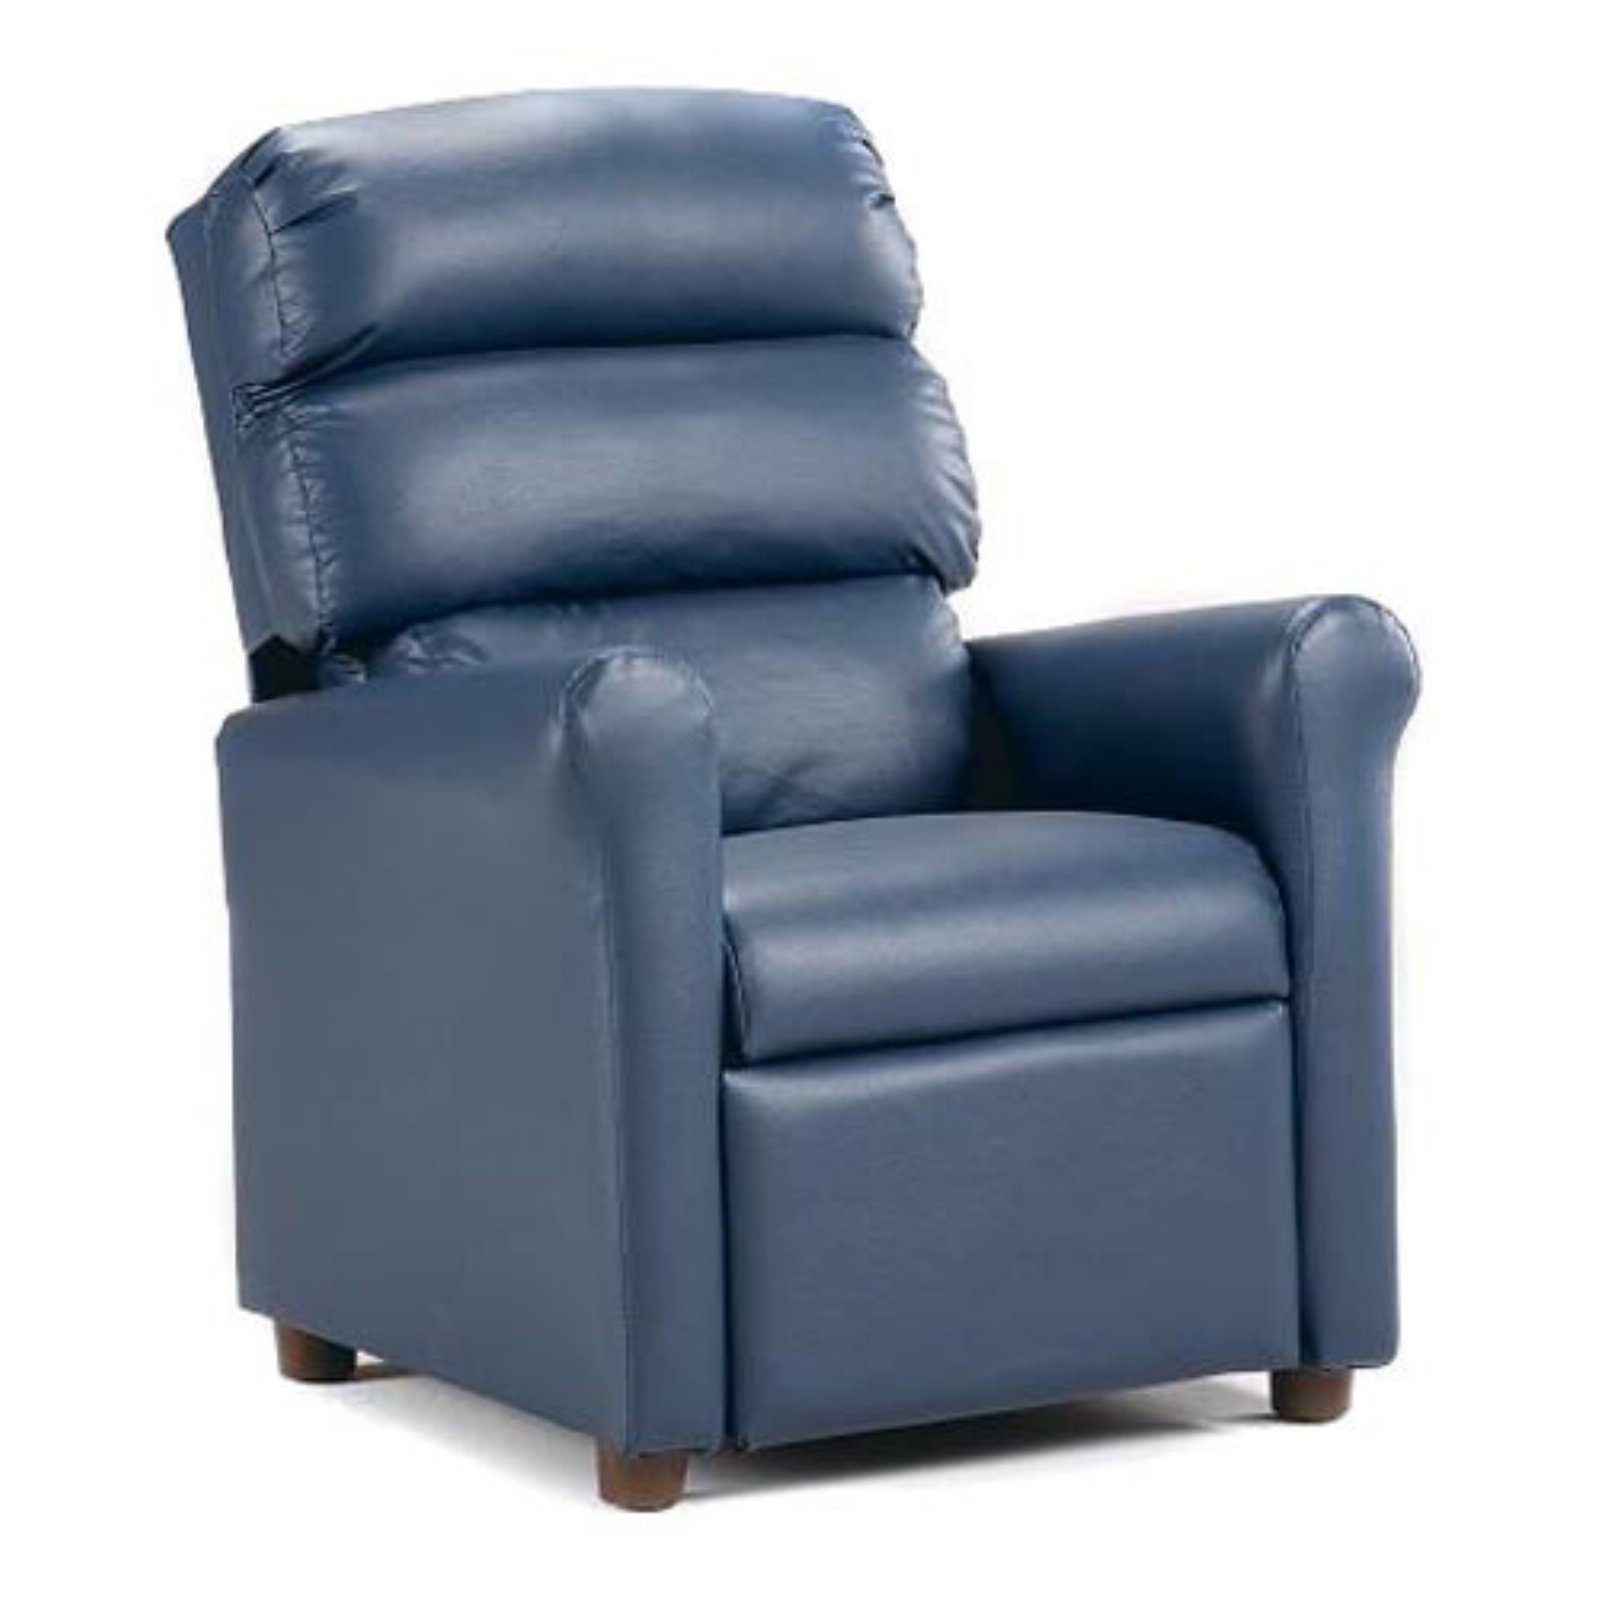 Brazil Furniture Waterfall Back Child Recliner